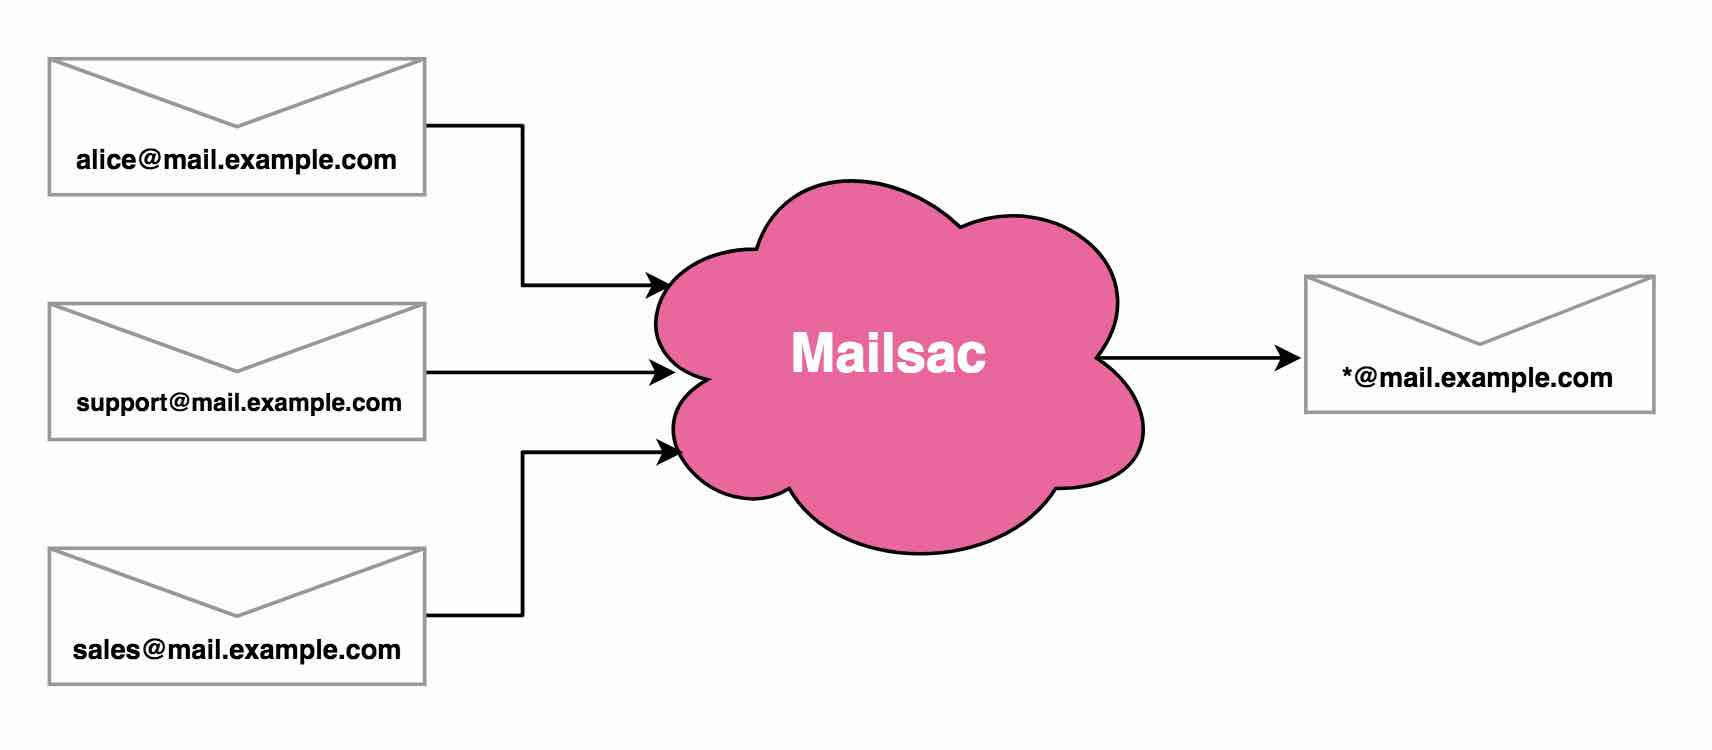 shows multiple emails coming into mailsac getting routed to a single email